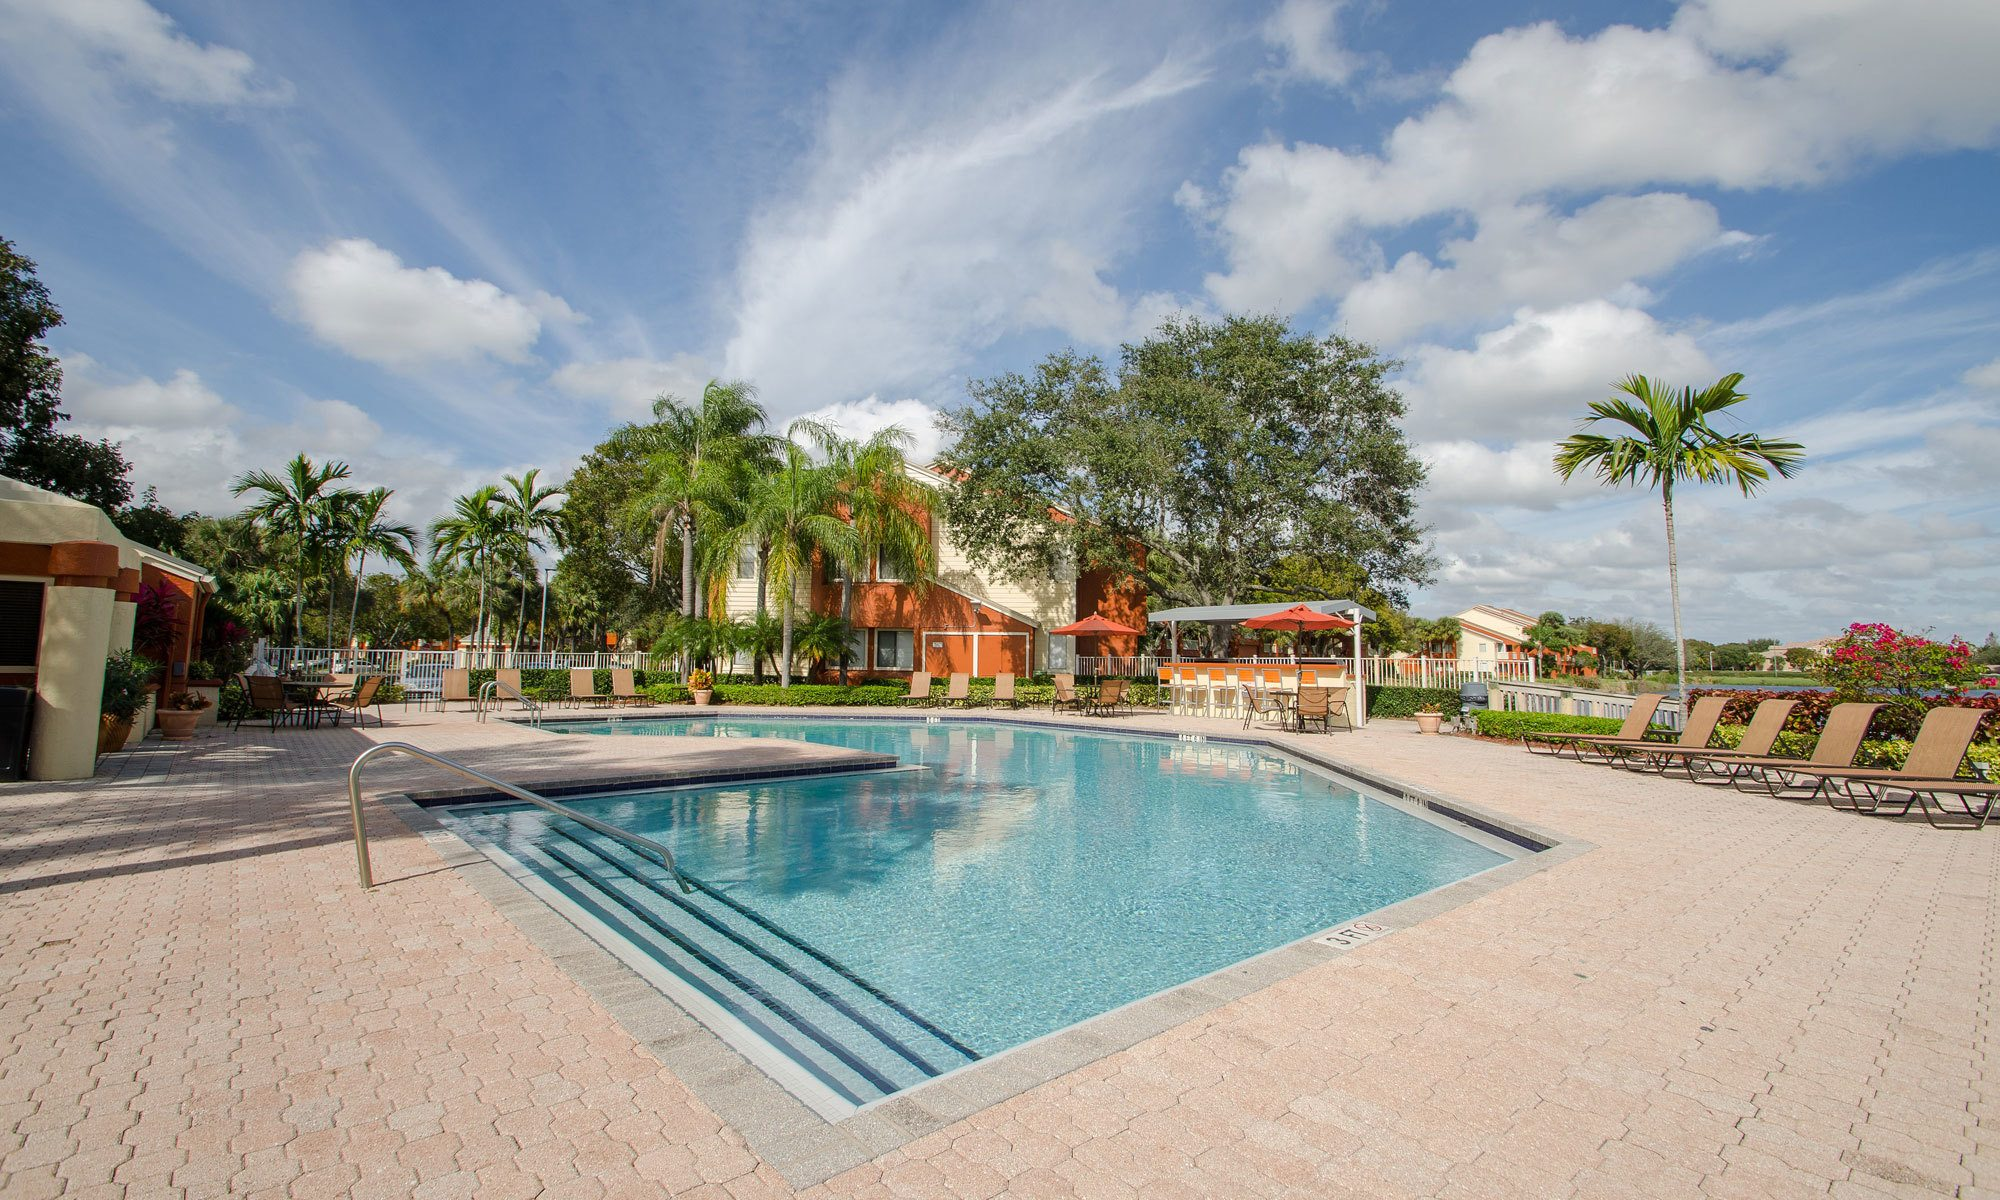 Apartments in Boynton Beach, FL